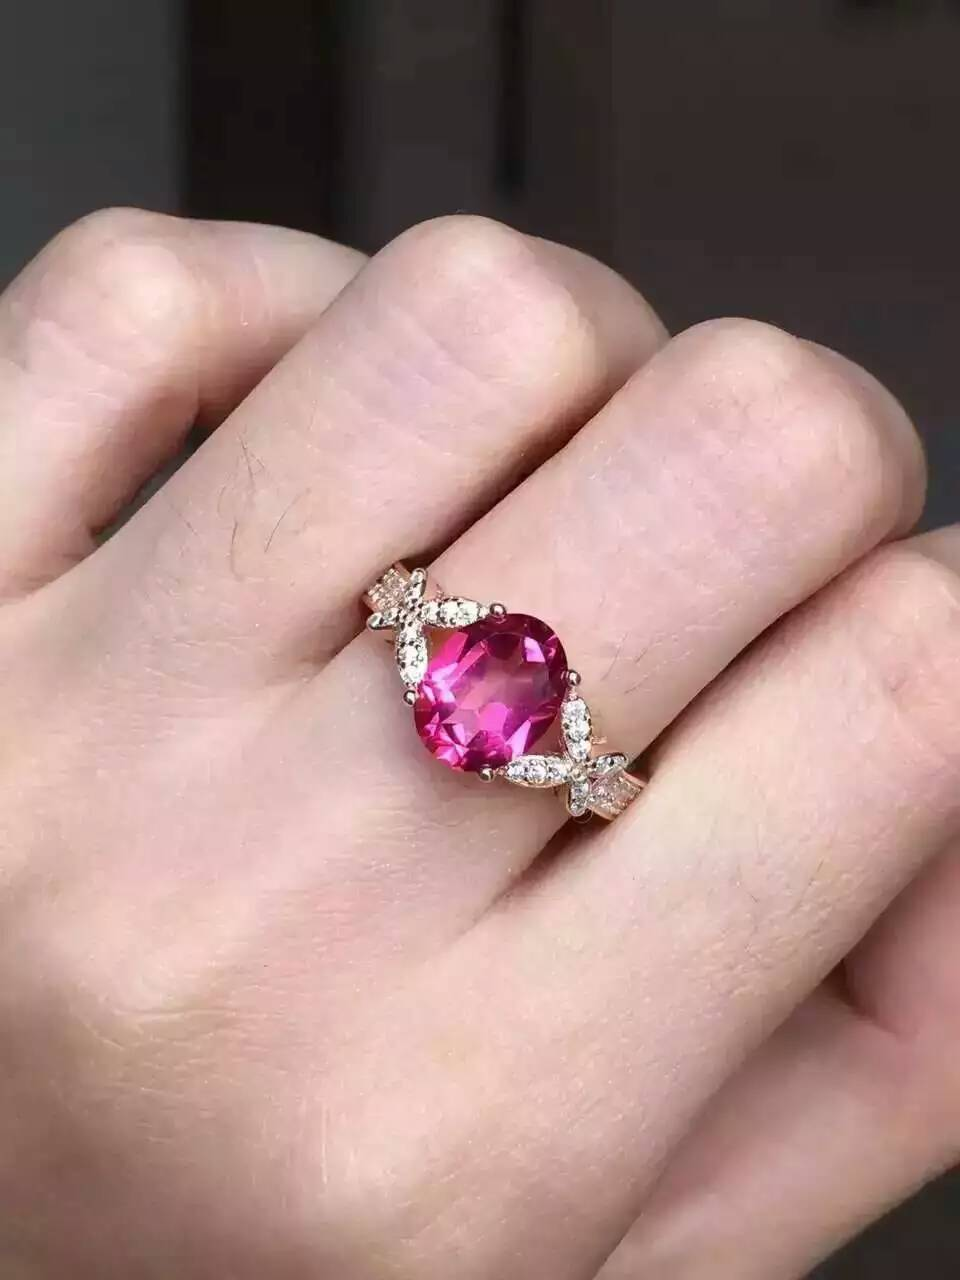 Natural red topaz gem Ring Natural gemstone ring 925 sterling silver trendy Bow butterfly women girl wedding party JewelryNatural red topaz gem Ring Natural gemstone ring 925 sterling silver trendy Bow butterfly women girl wedding party Jewelry